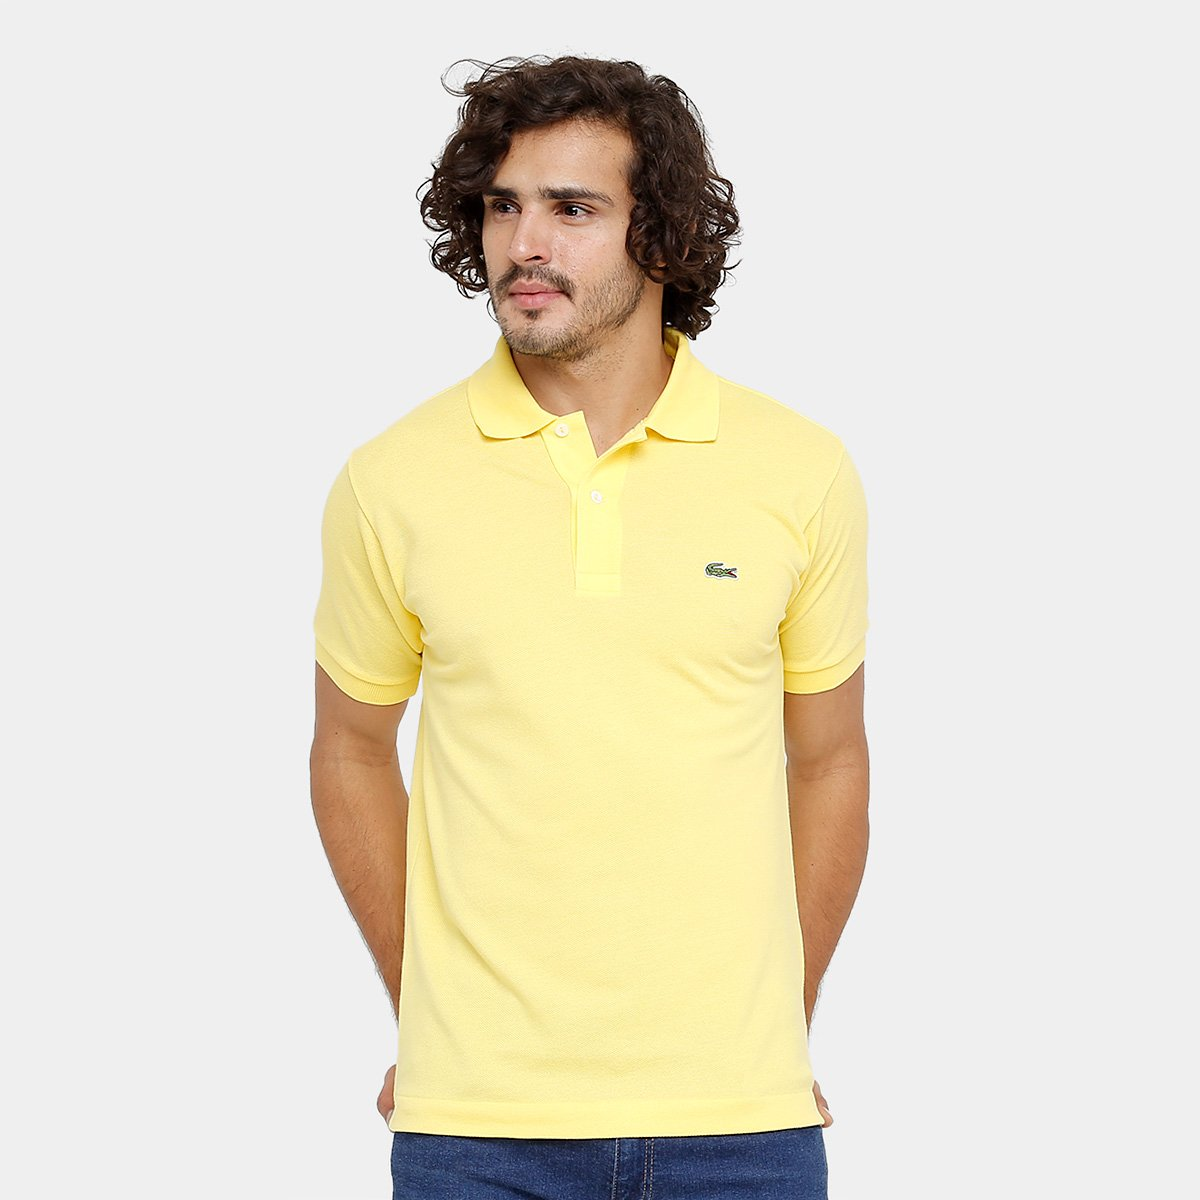 Camisa Polo Lacoste Piquet Original Fit Masculina ce6b07808bf6c